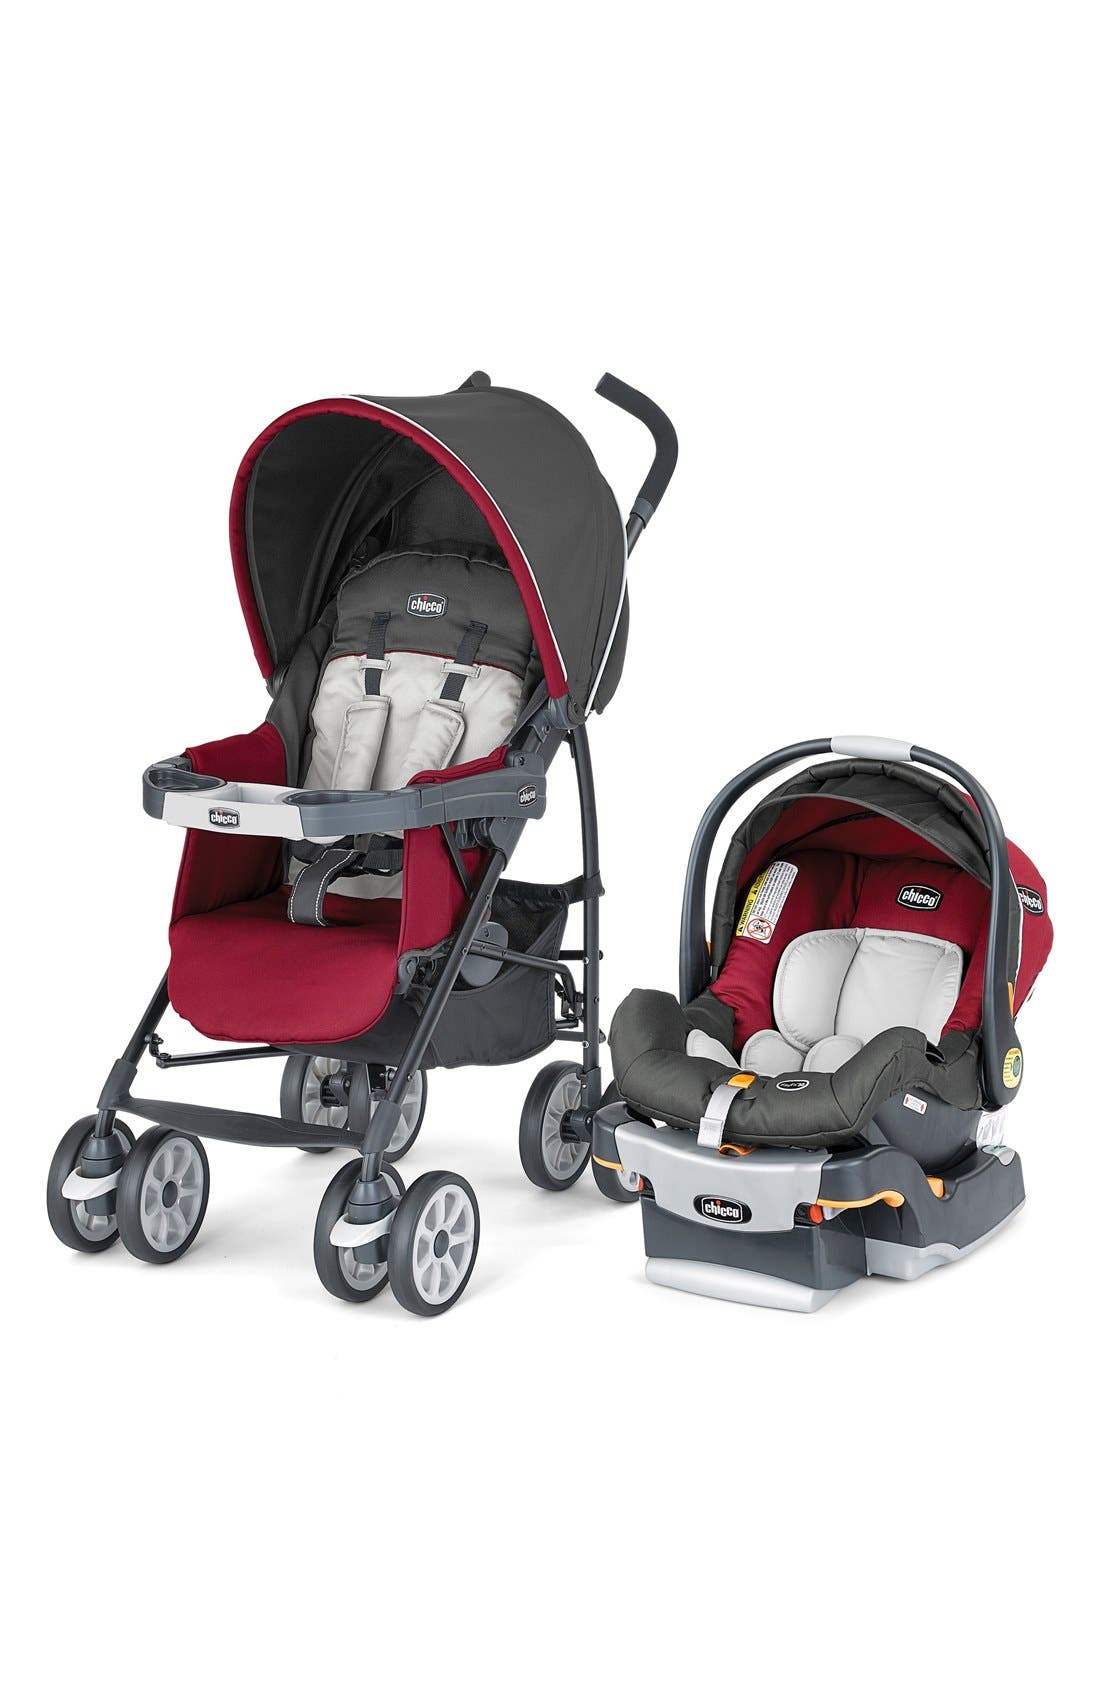 Alternate Image 1 Selected - Chicco 'Neuvo™ Travel System' Car Seat & Stroller